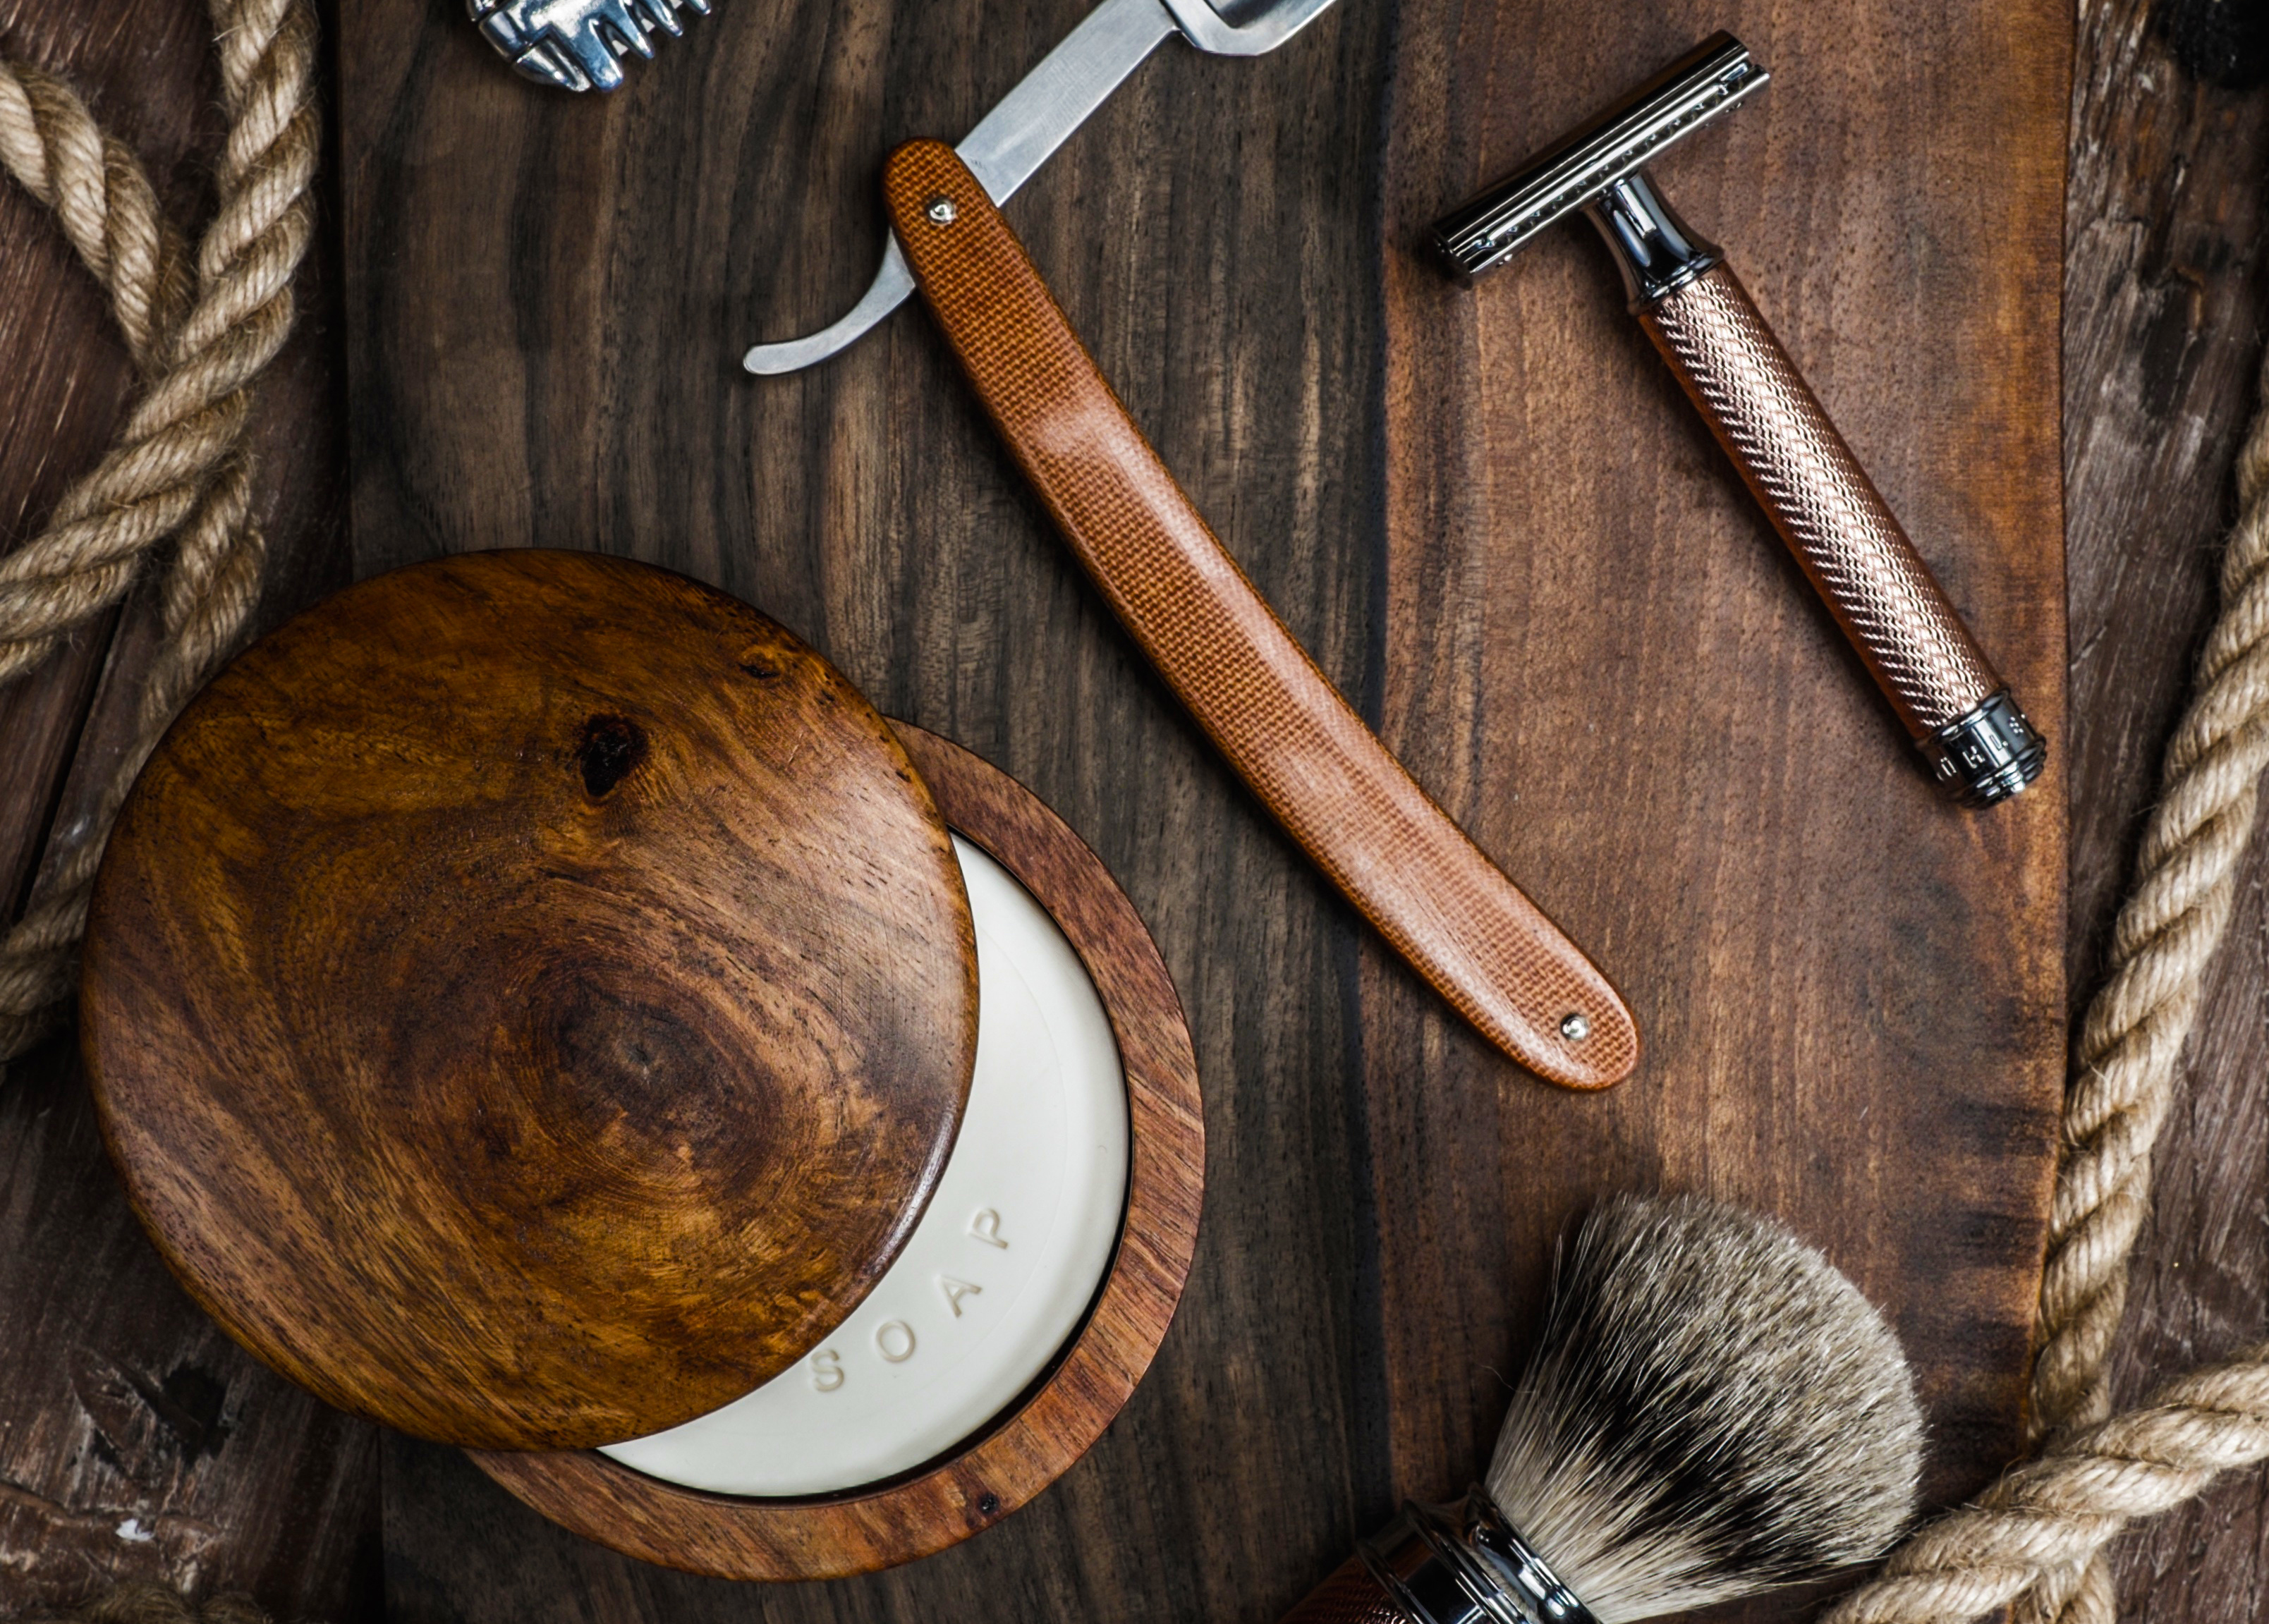 How to Use Shaving Soap? A well-groomed man's guide